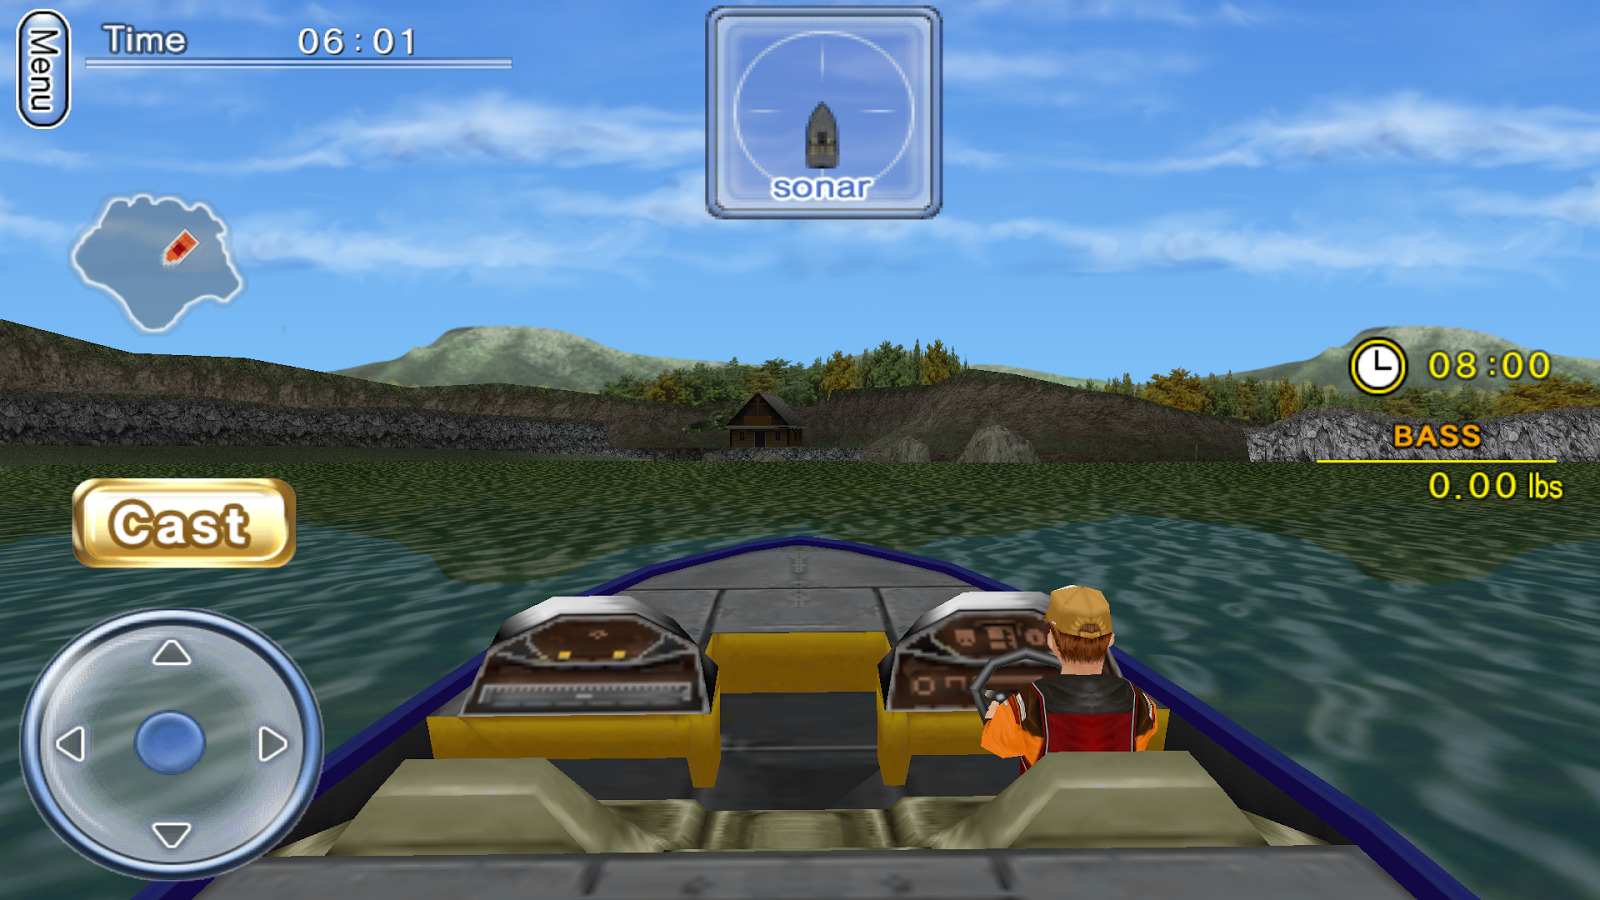 Bass Fishing 3D on the Boat- screenshot